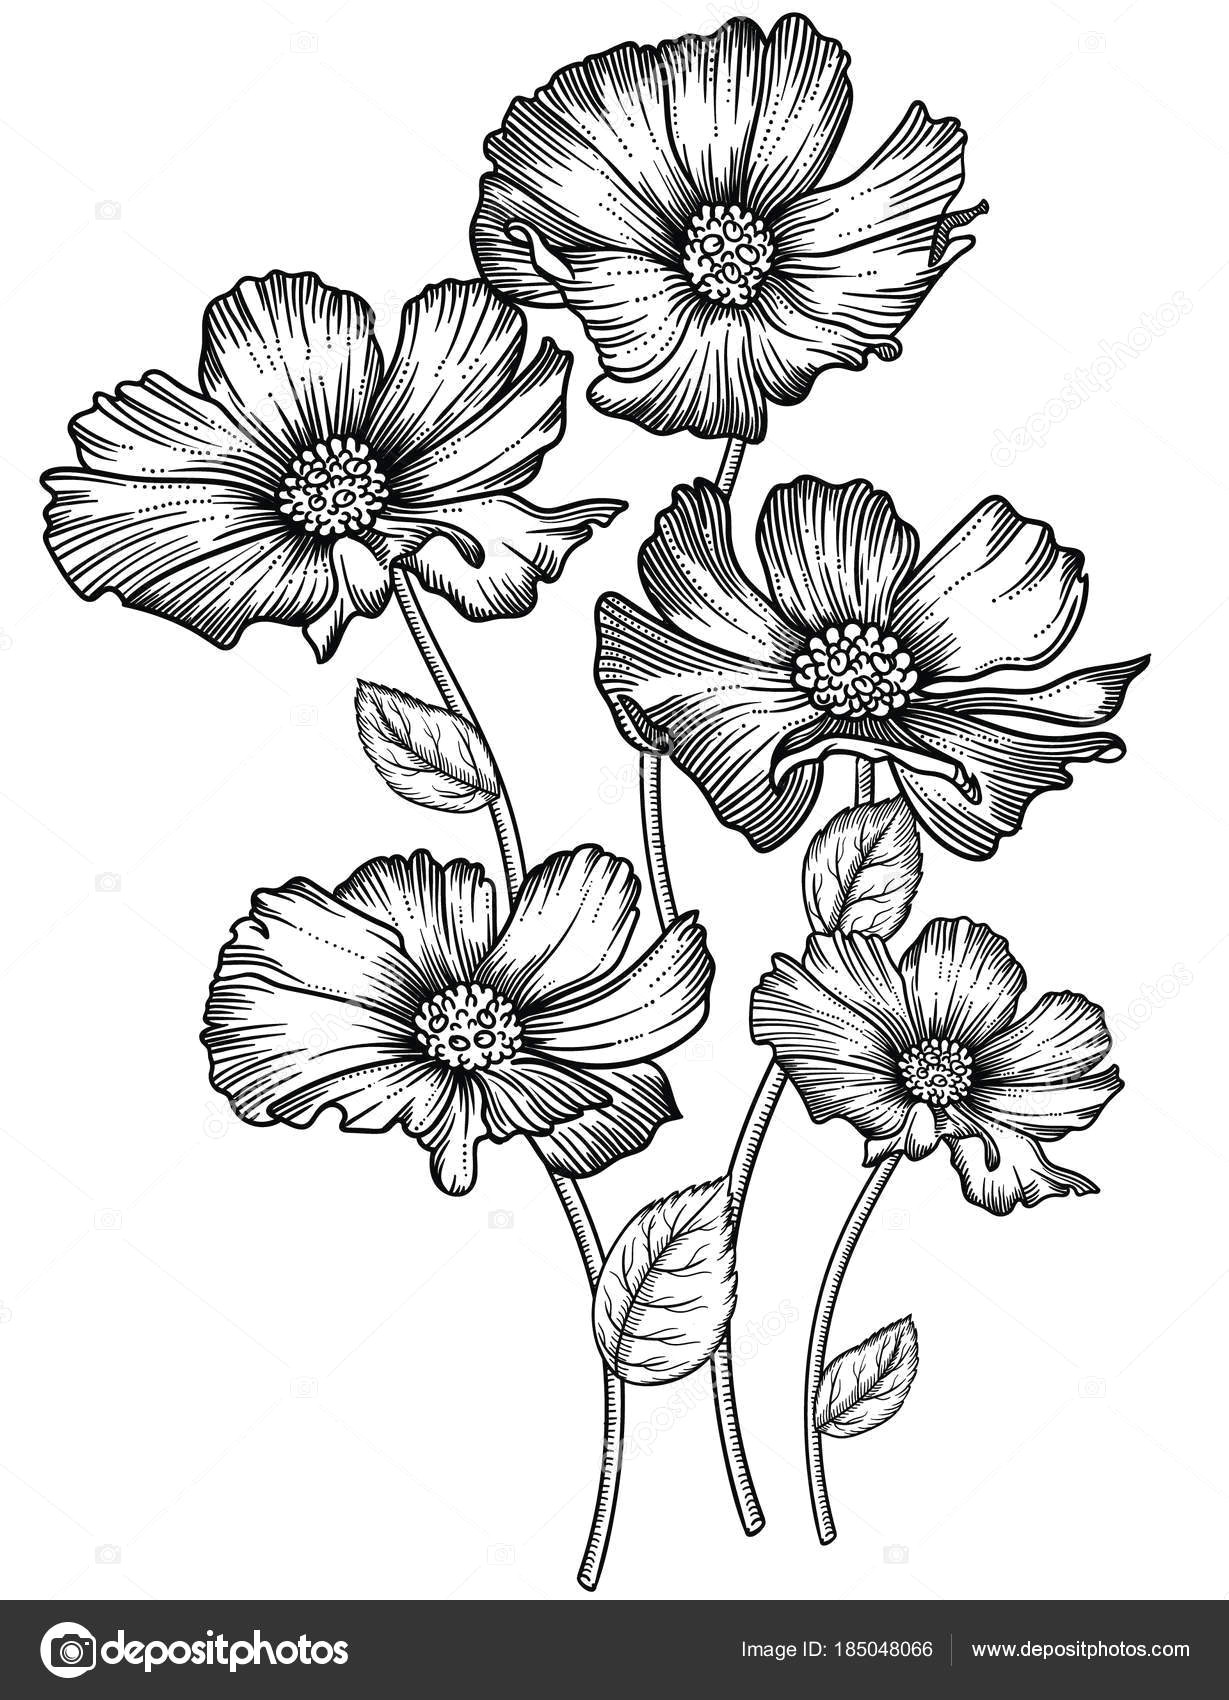 blooming forest flowers detailed hand drawn vector illustration romantic decorative flower drawing in line art all sketches objects isolated on white